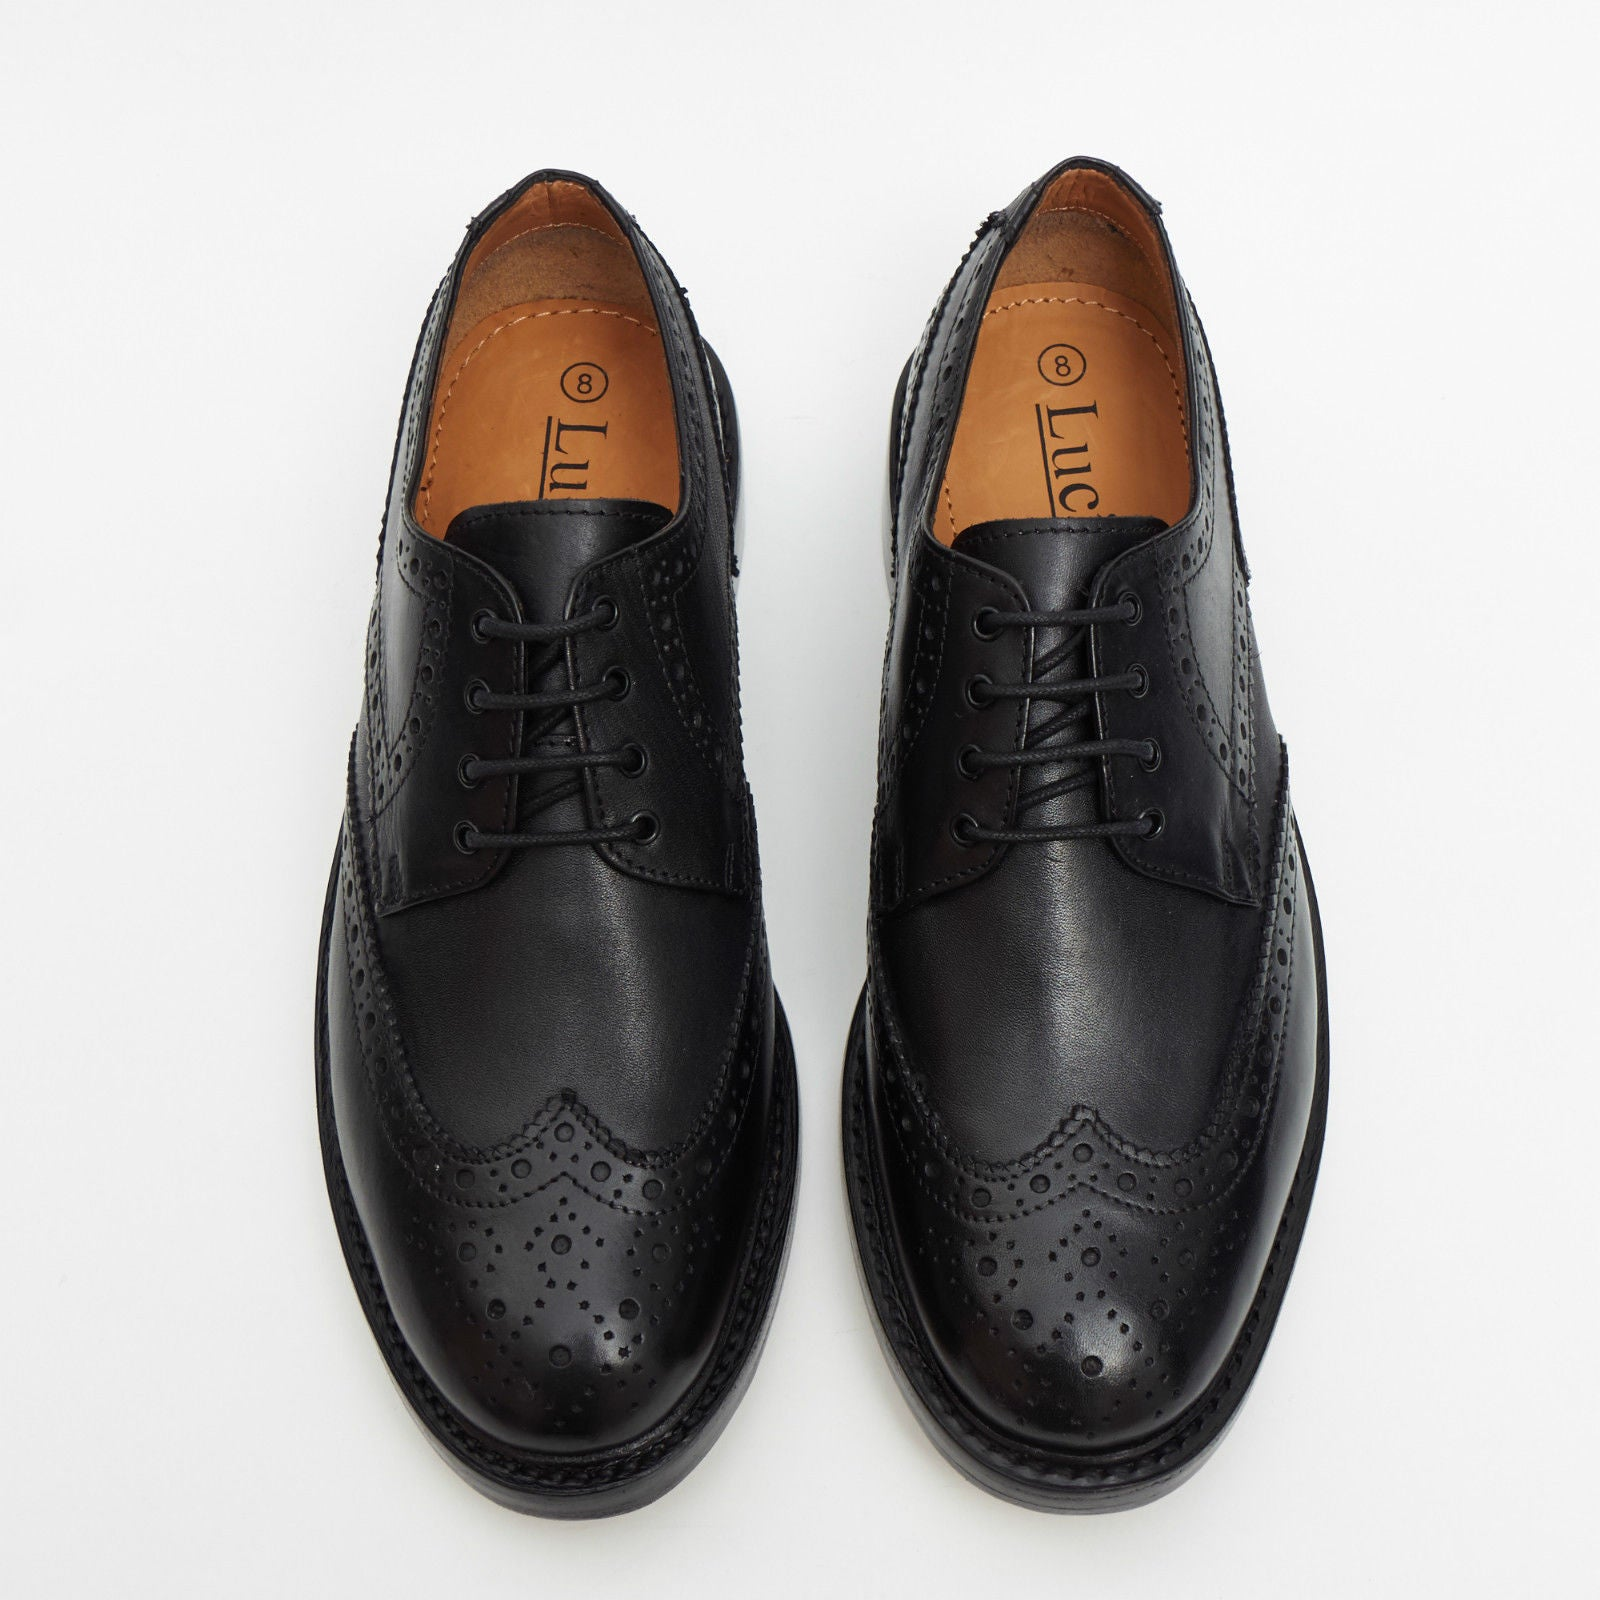 Mens Goodyear Welted Brogue Shoes - 17941